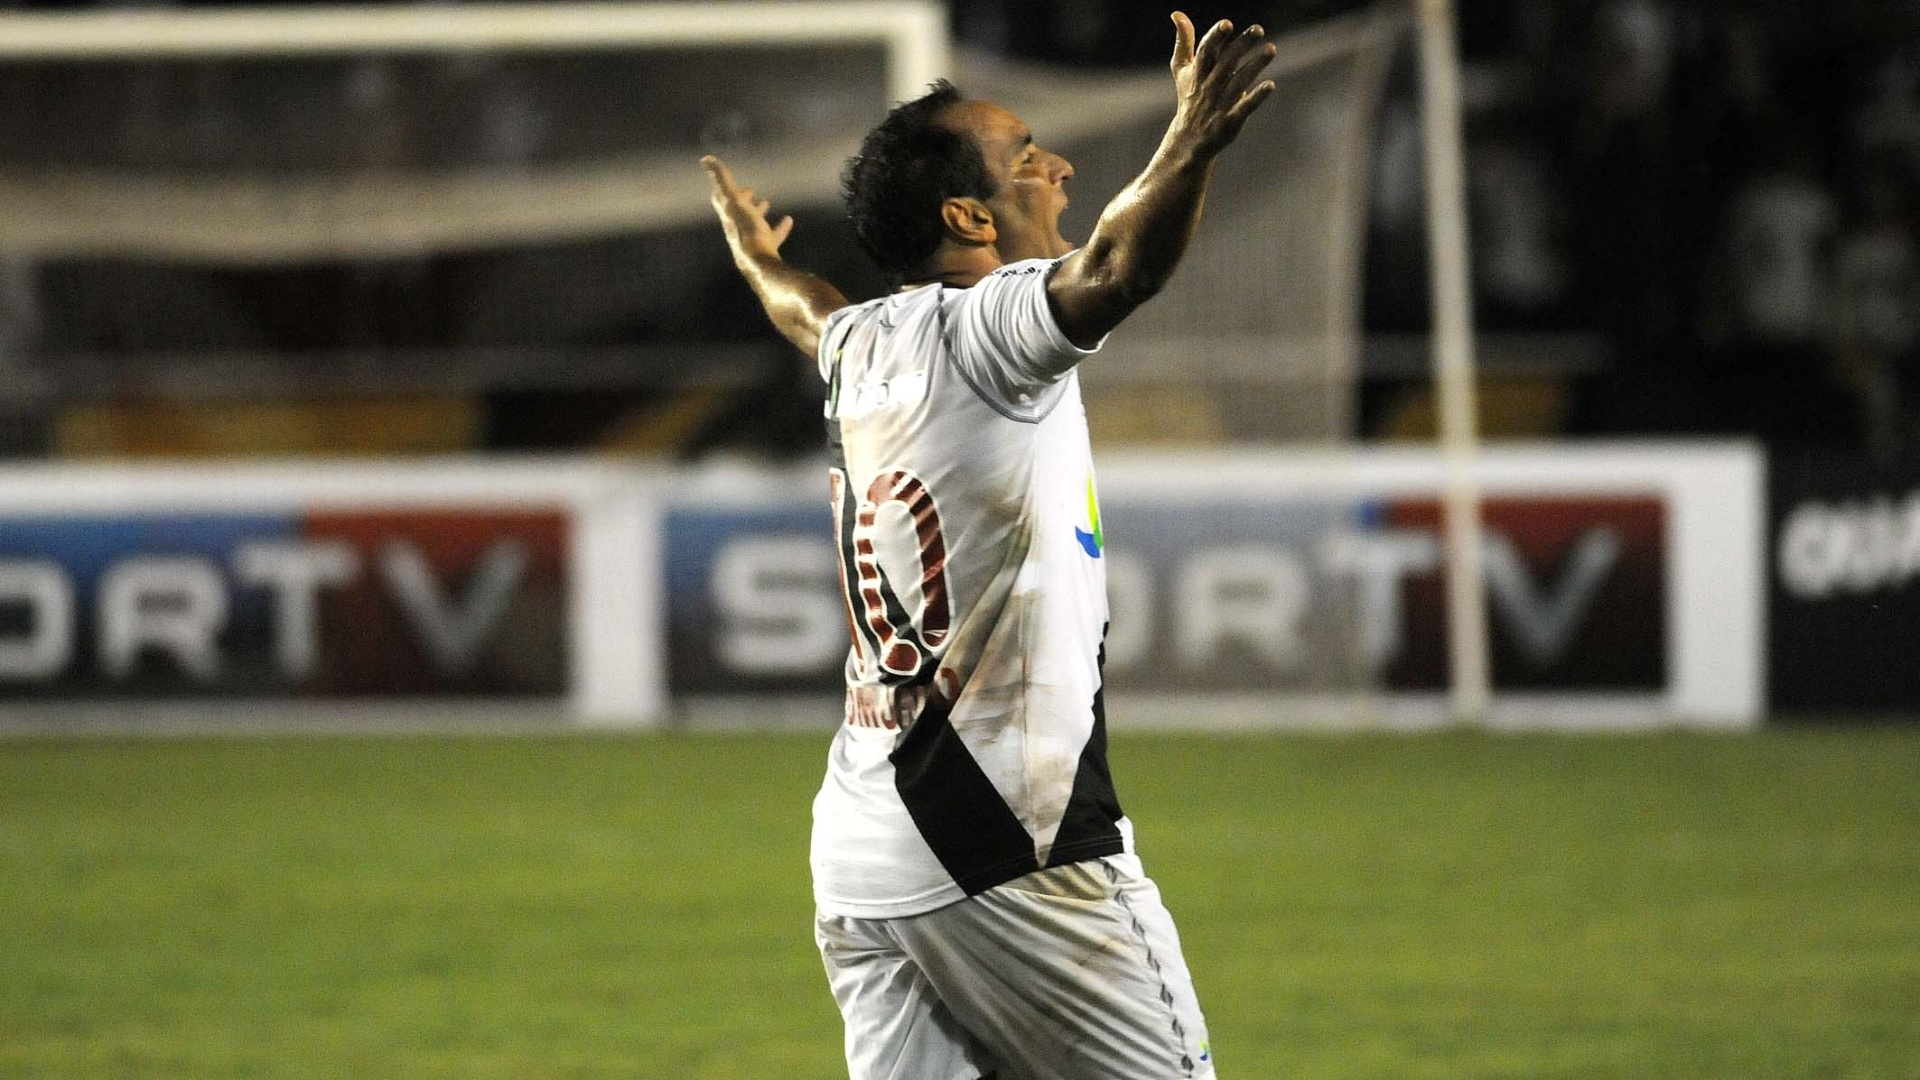 Edmundo comemora depois de marcar no jogo de despedida pelo Vasco, contra o Barcelona (EQU), em So Janurio